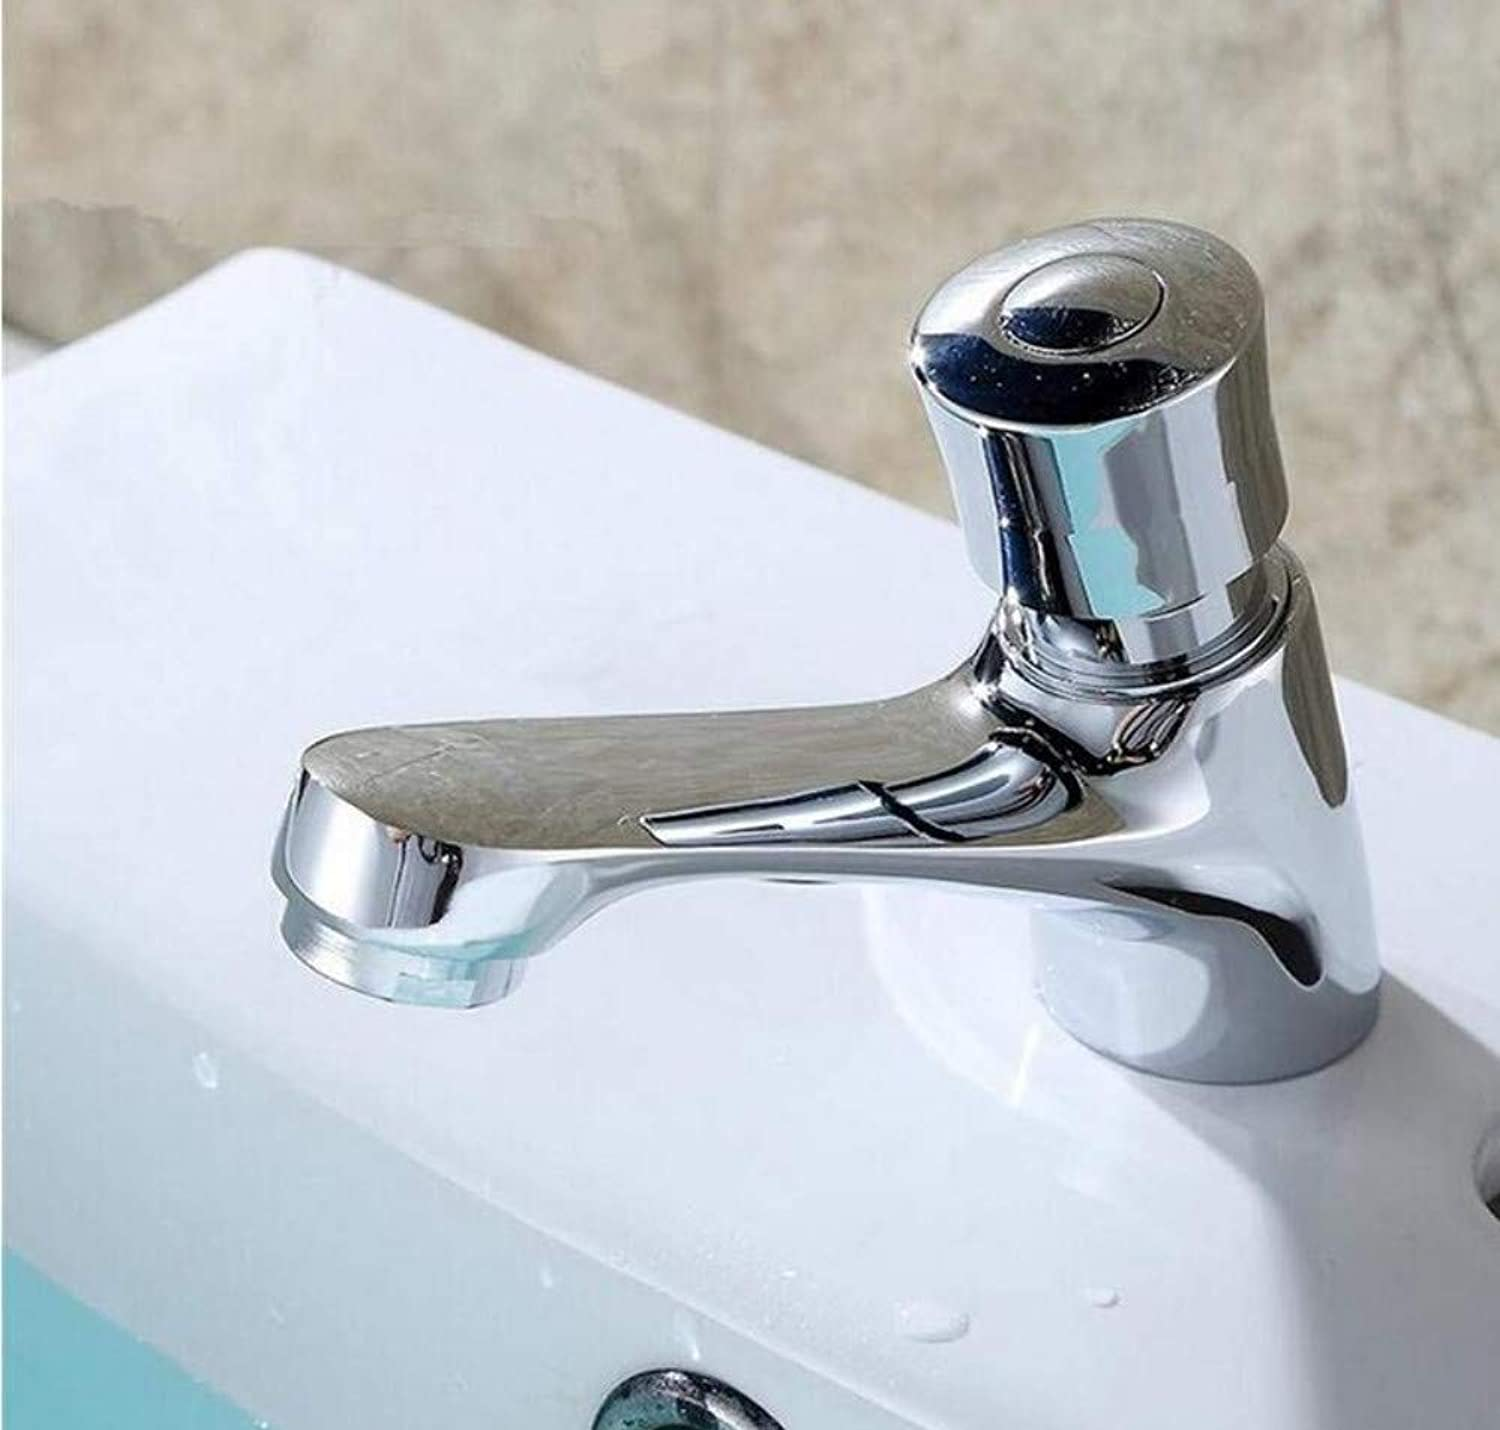 Brass Wall Faucet Chrome Brass Faucetwater Saving Tap for Public Toilet Metered Faucet